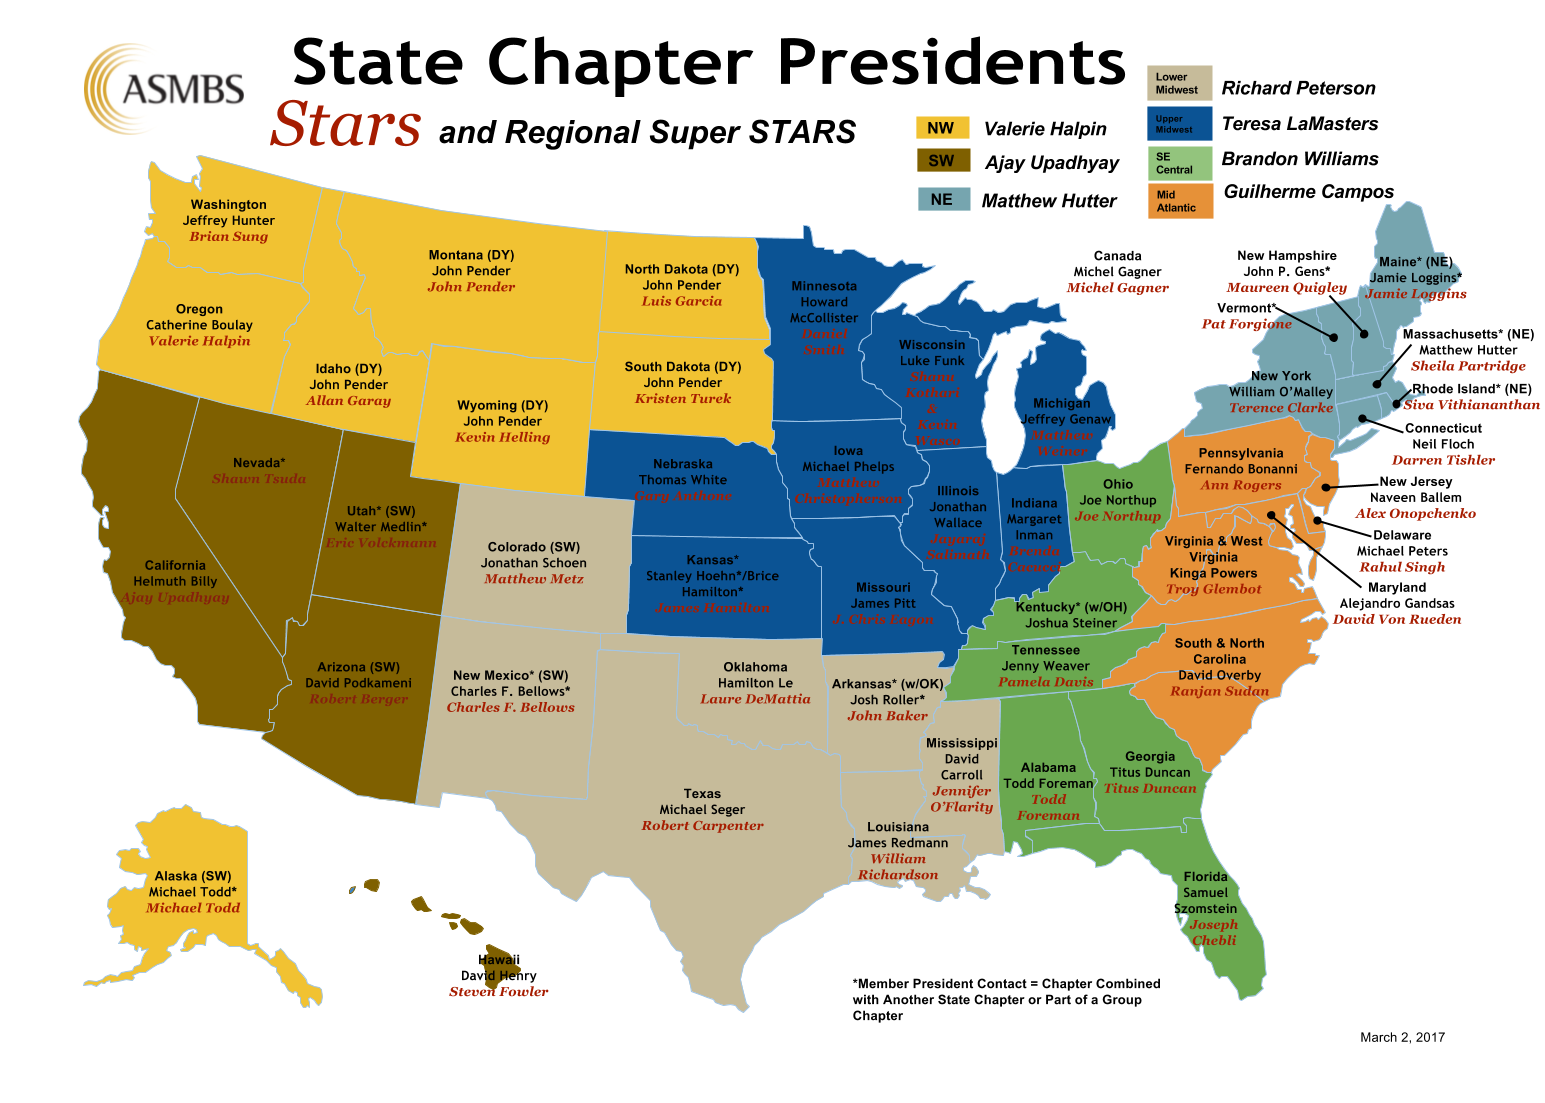 """State-Chapter-President-and-Star-Map-03022017.png"""""""